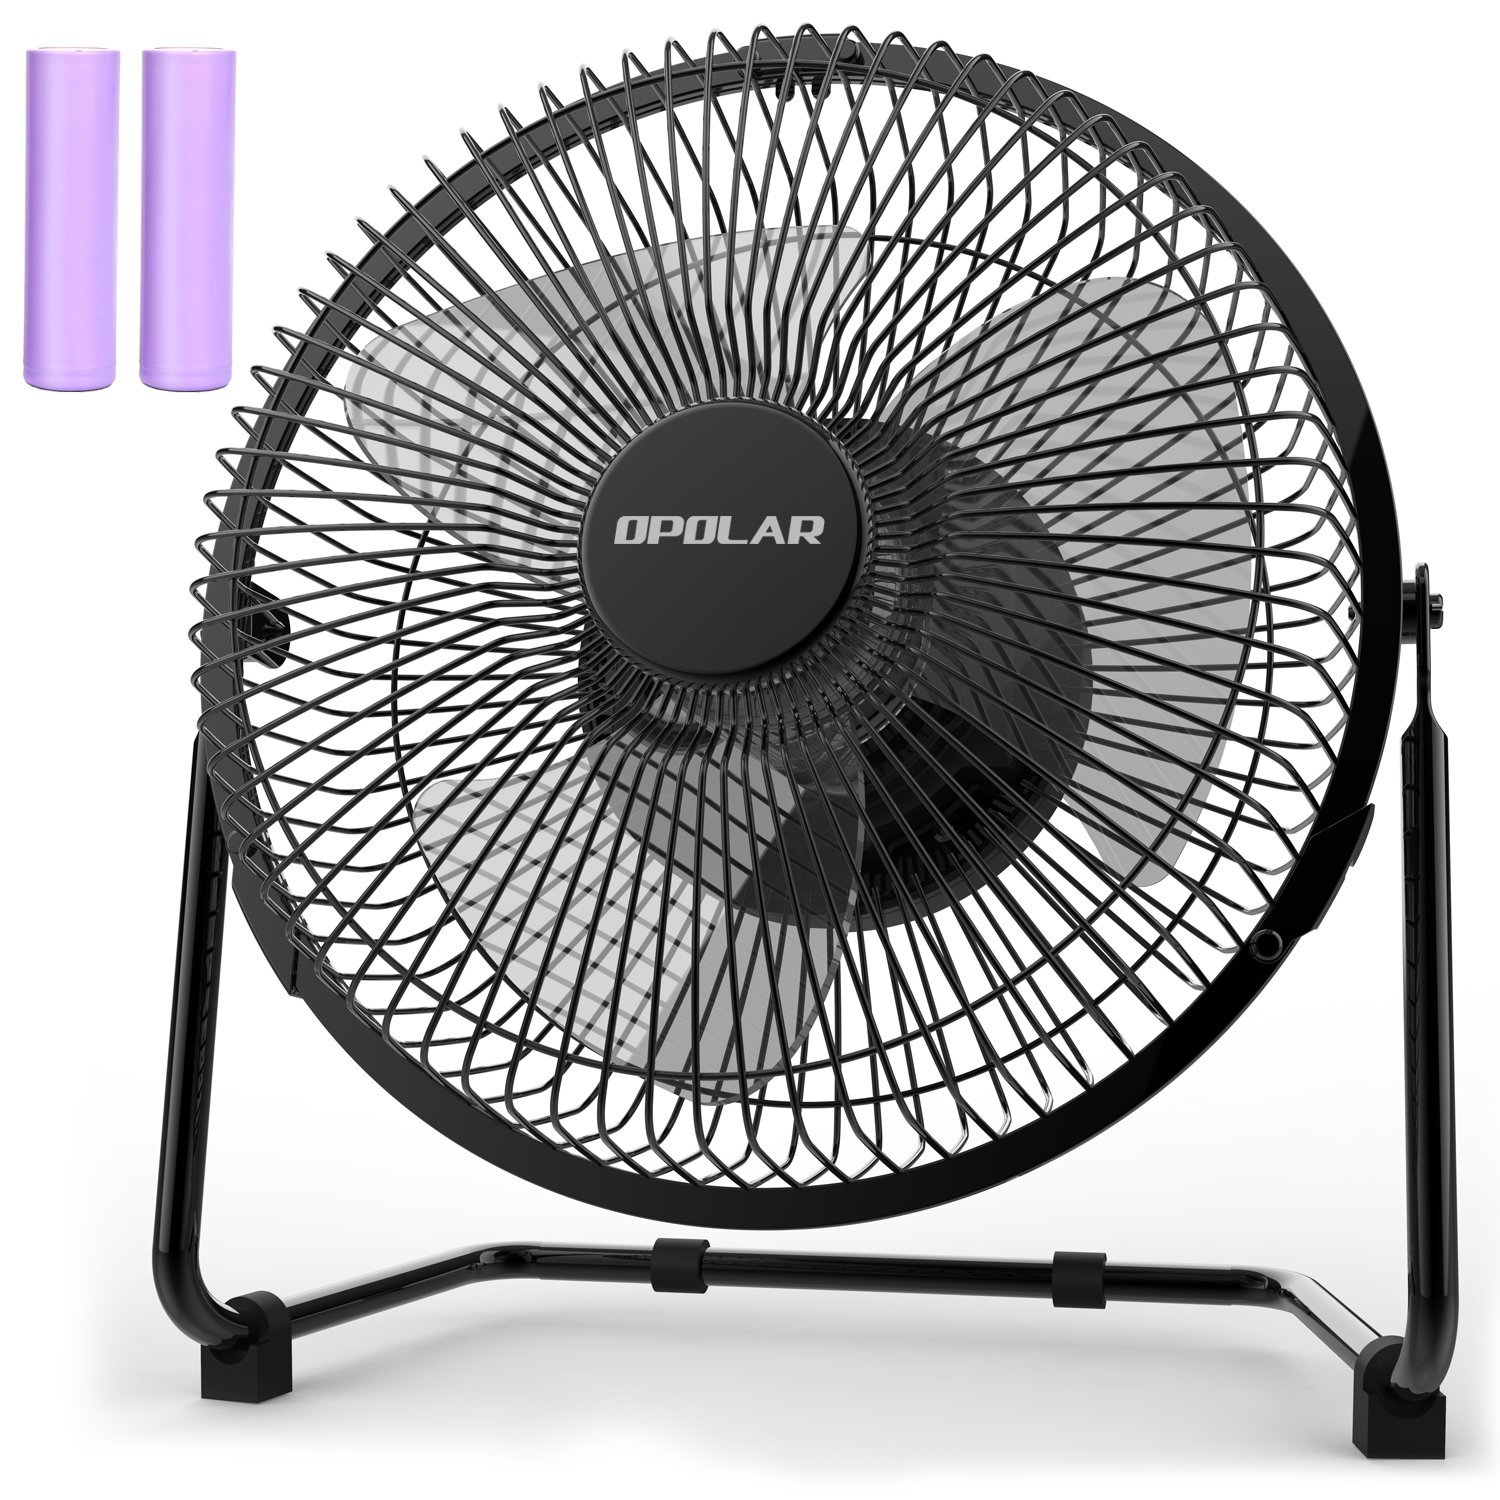 OPOLAR 9 Inch Battery Operated Rechargeable Fan, Metal USB Desk Fan with 5200 mAh Capacity, Strong Airflow, Lower Noise, Two Speeds, Personal Cooling Fan for Home & Office & Camping & Hurricane